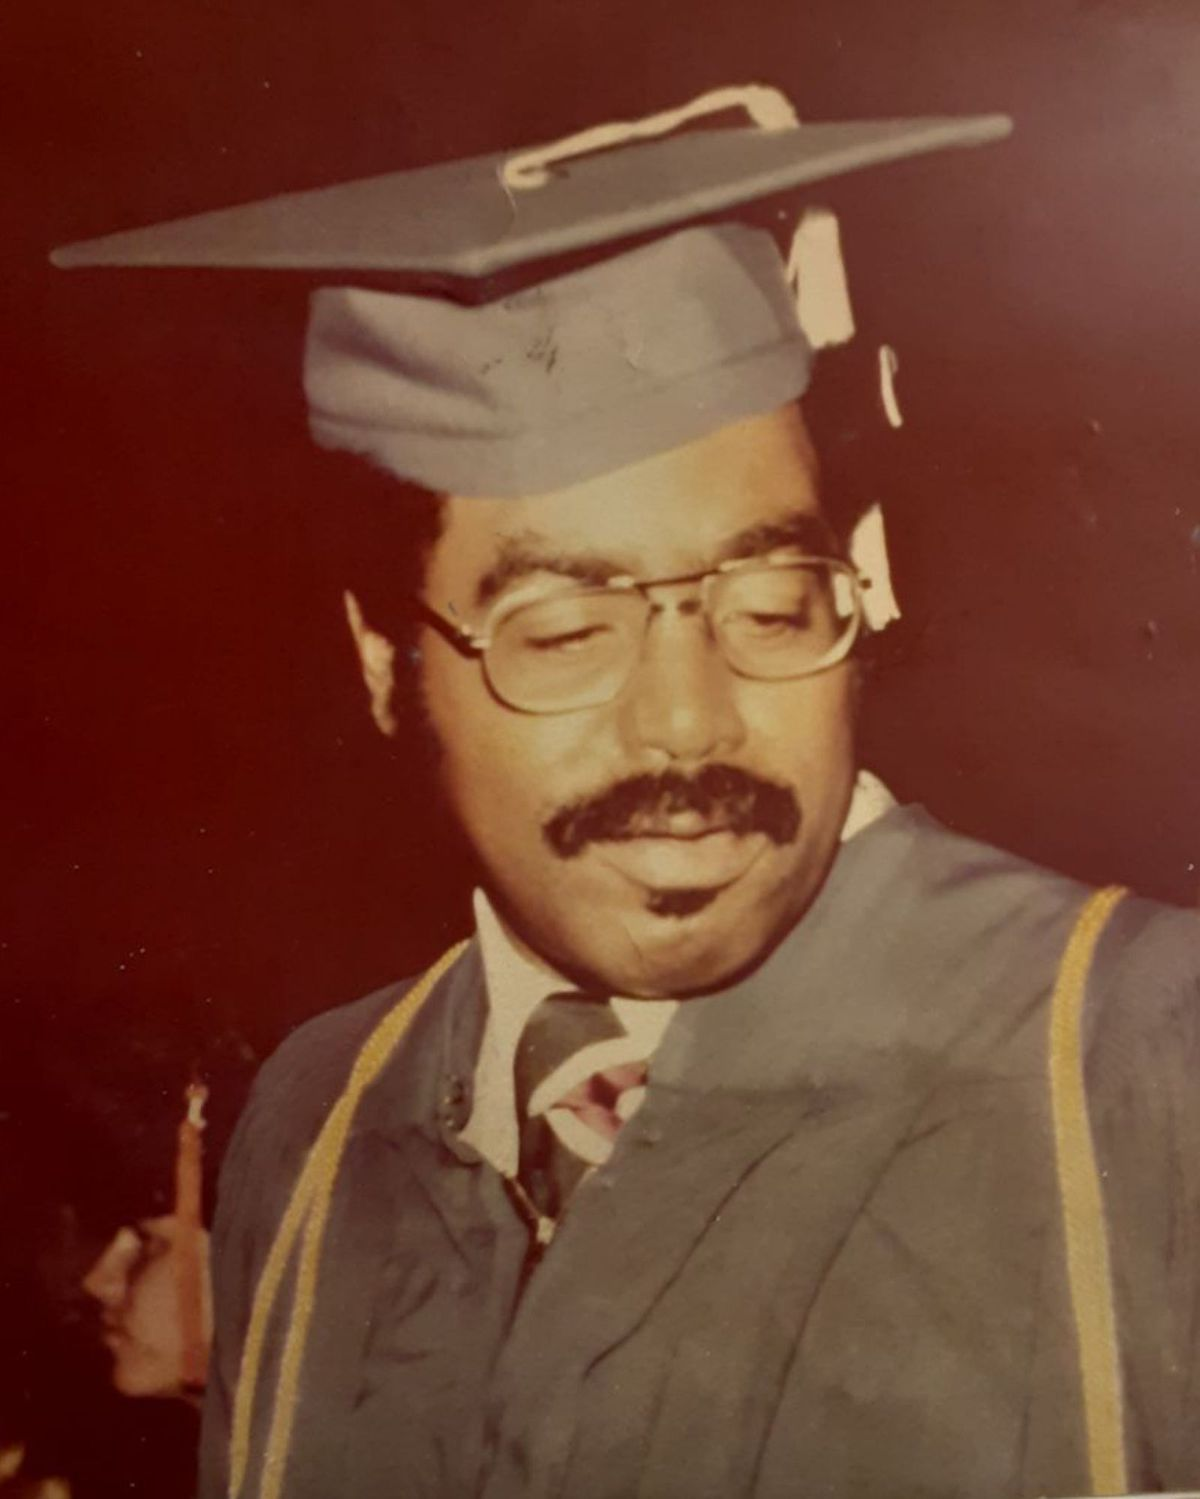 Al Jenkins got his associate's degree in liberal arts in 1977 from Milwaukee Area Technical College.